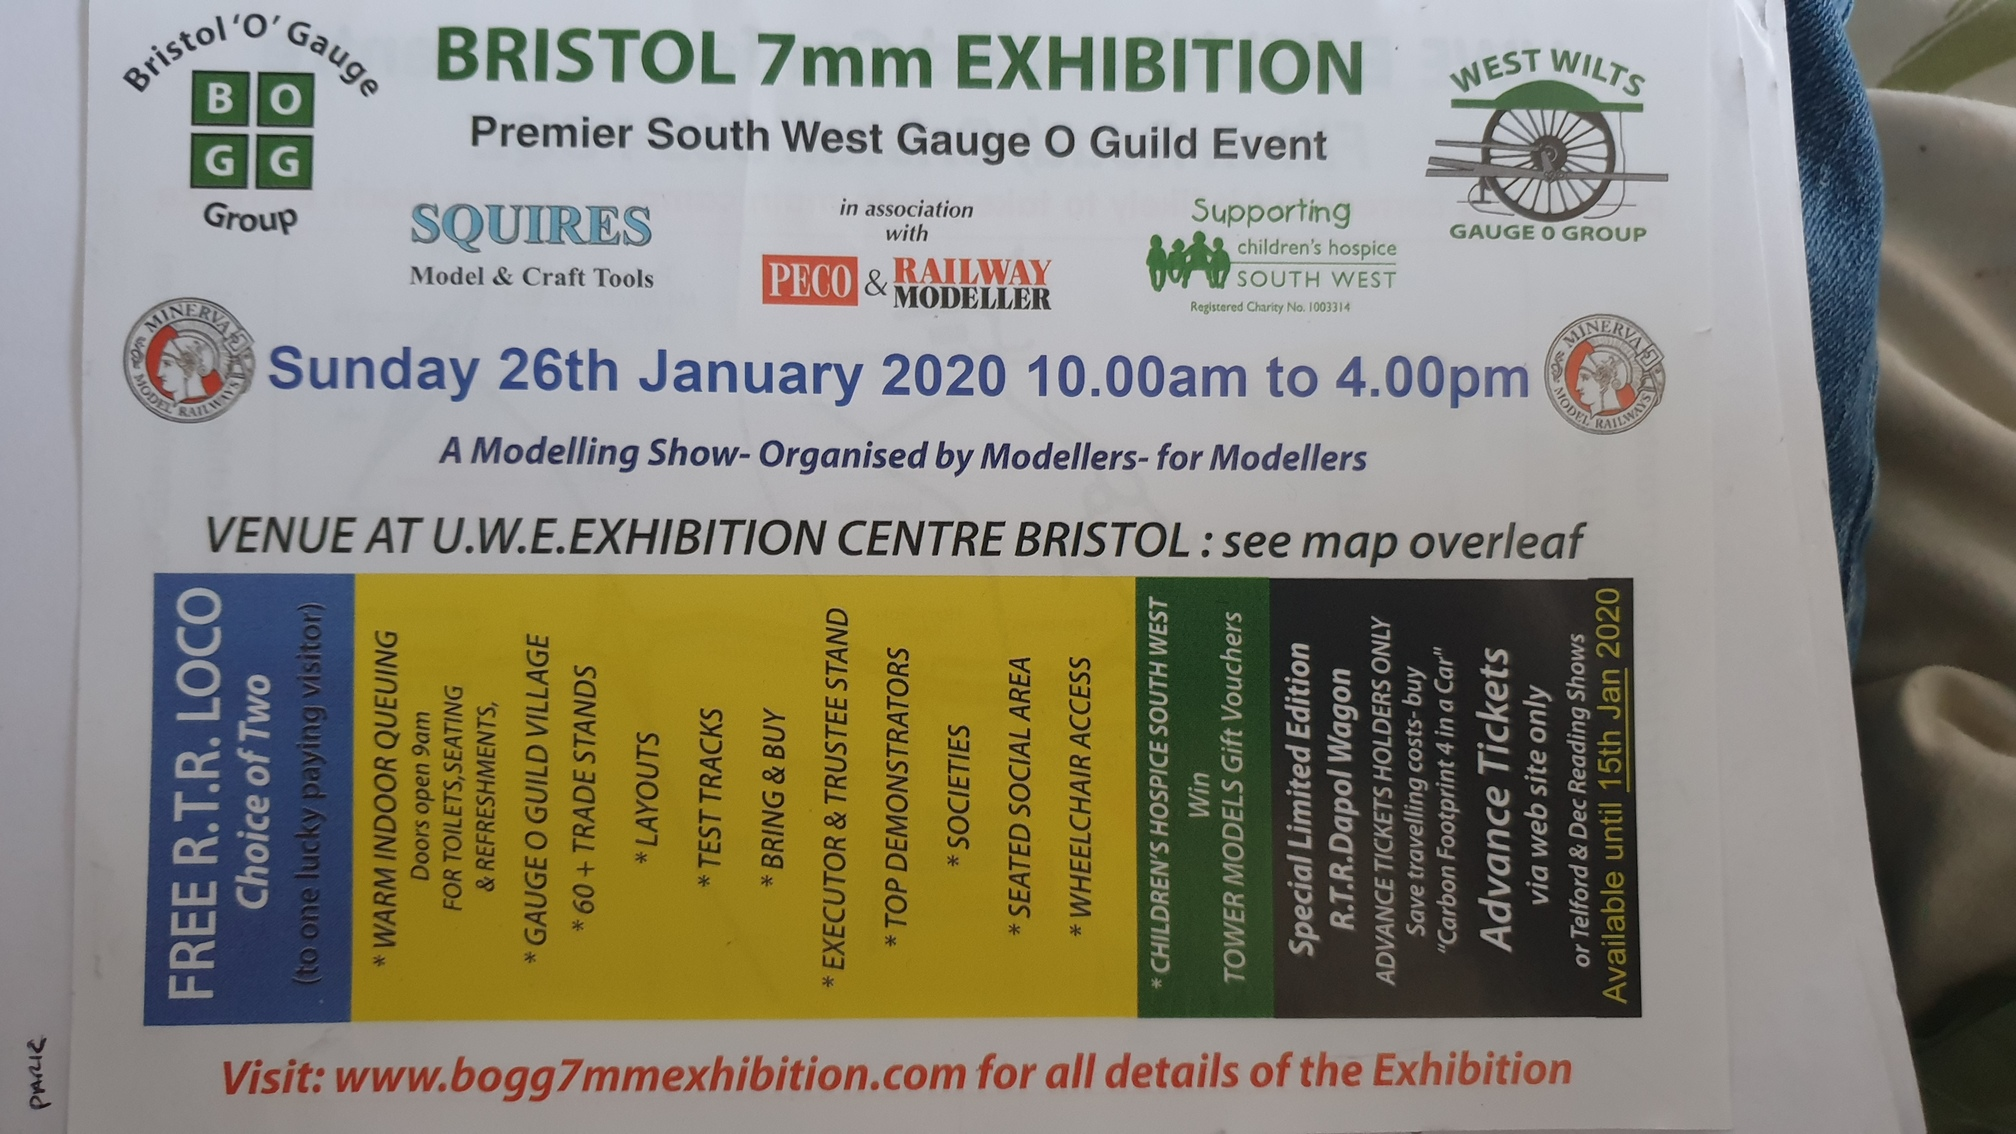 bristol mm exhibition